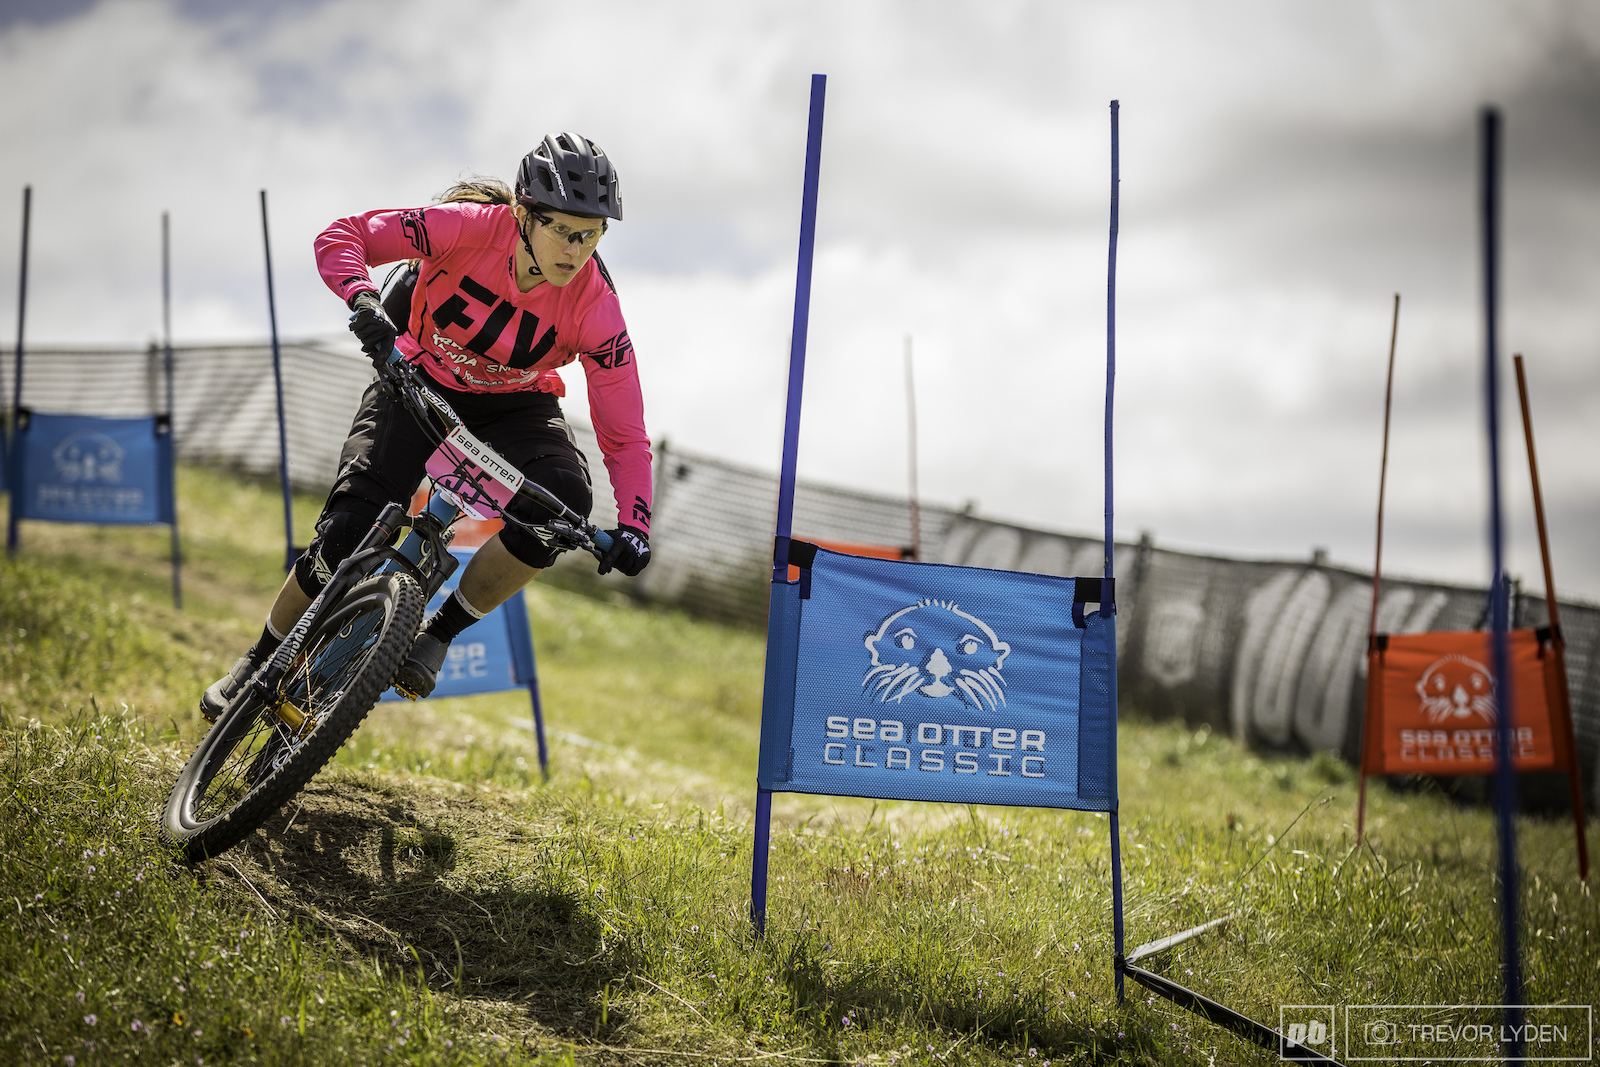 Porsha Murdock on stage 4 of the enduro.